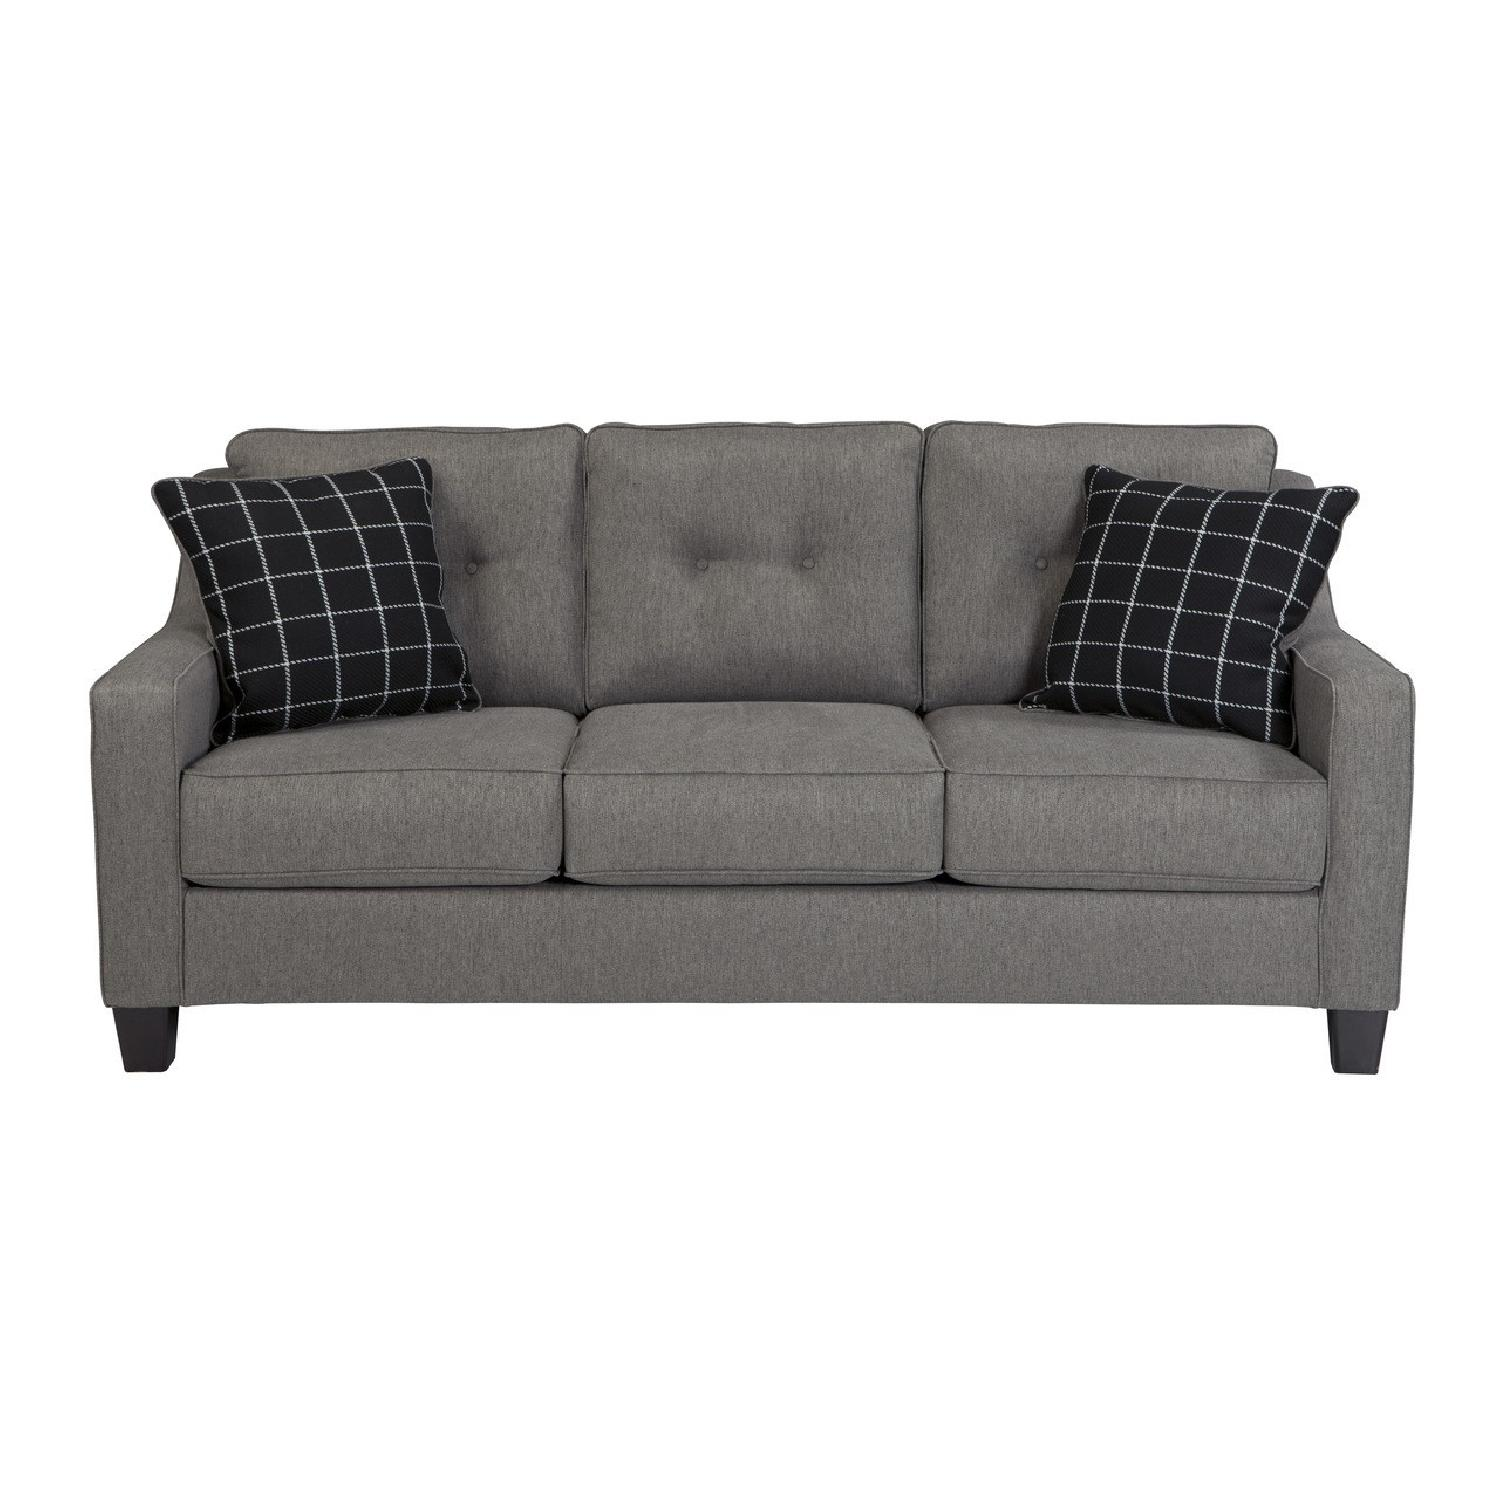 Ashley Brindon Queen Sleeper Sofa In Charcoal ...